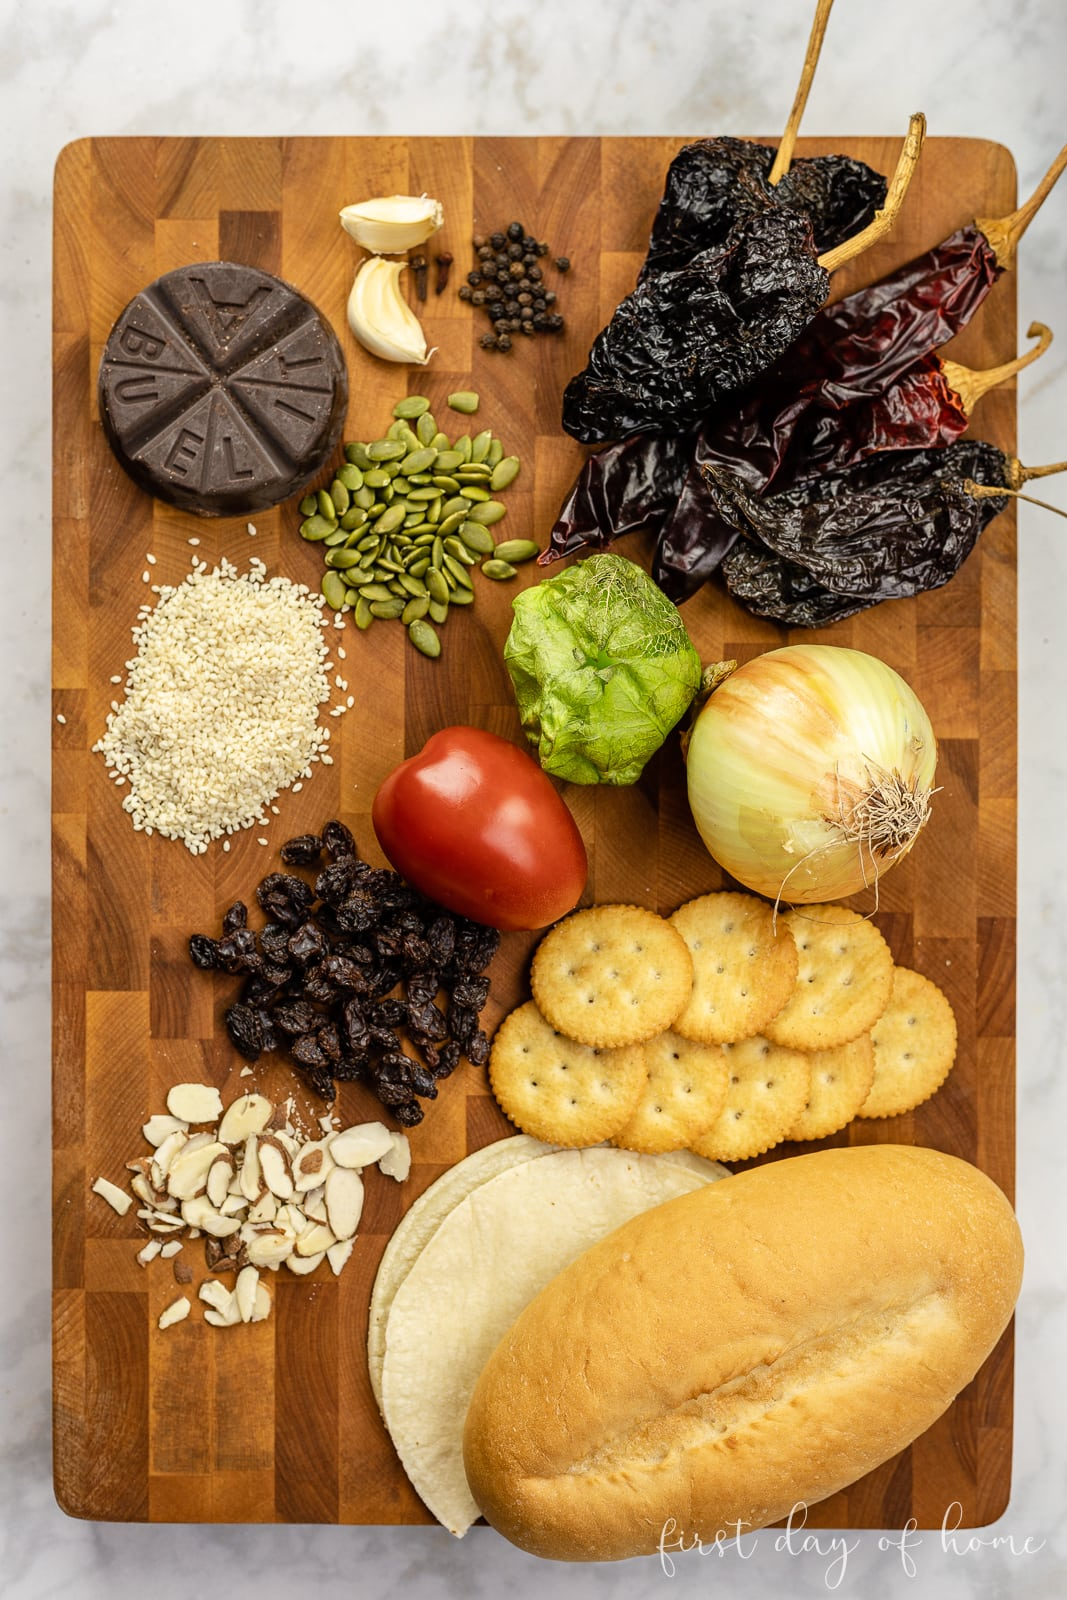 Cutting board with chicken mole sauce ingredients, including chili peppers, raisins, chocolate, onion, sesame seeds and other fruits and spices